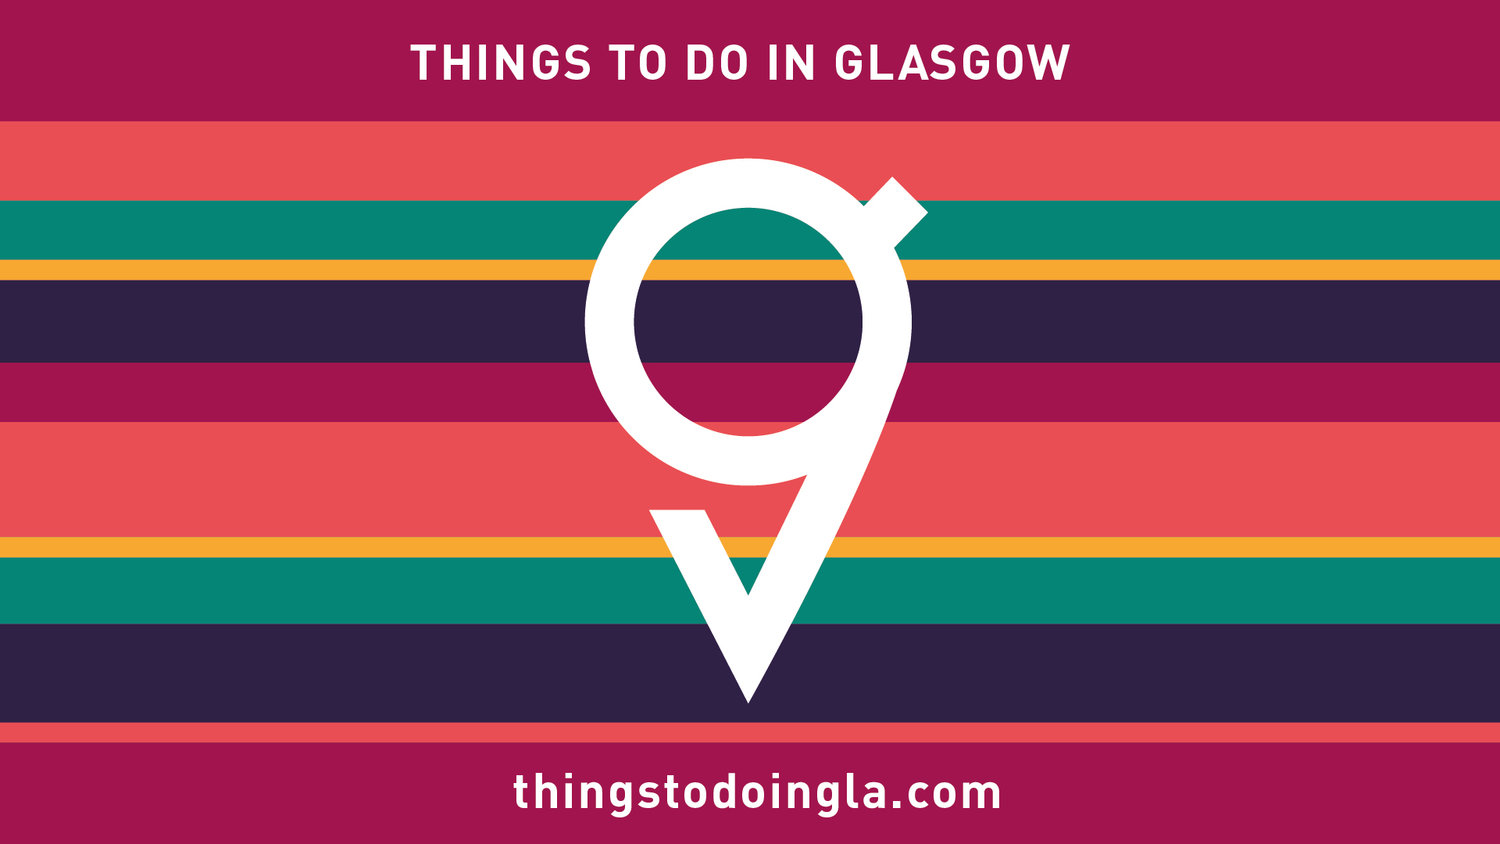 Things To Do in Glasgow | The UK's Third Largest City